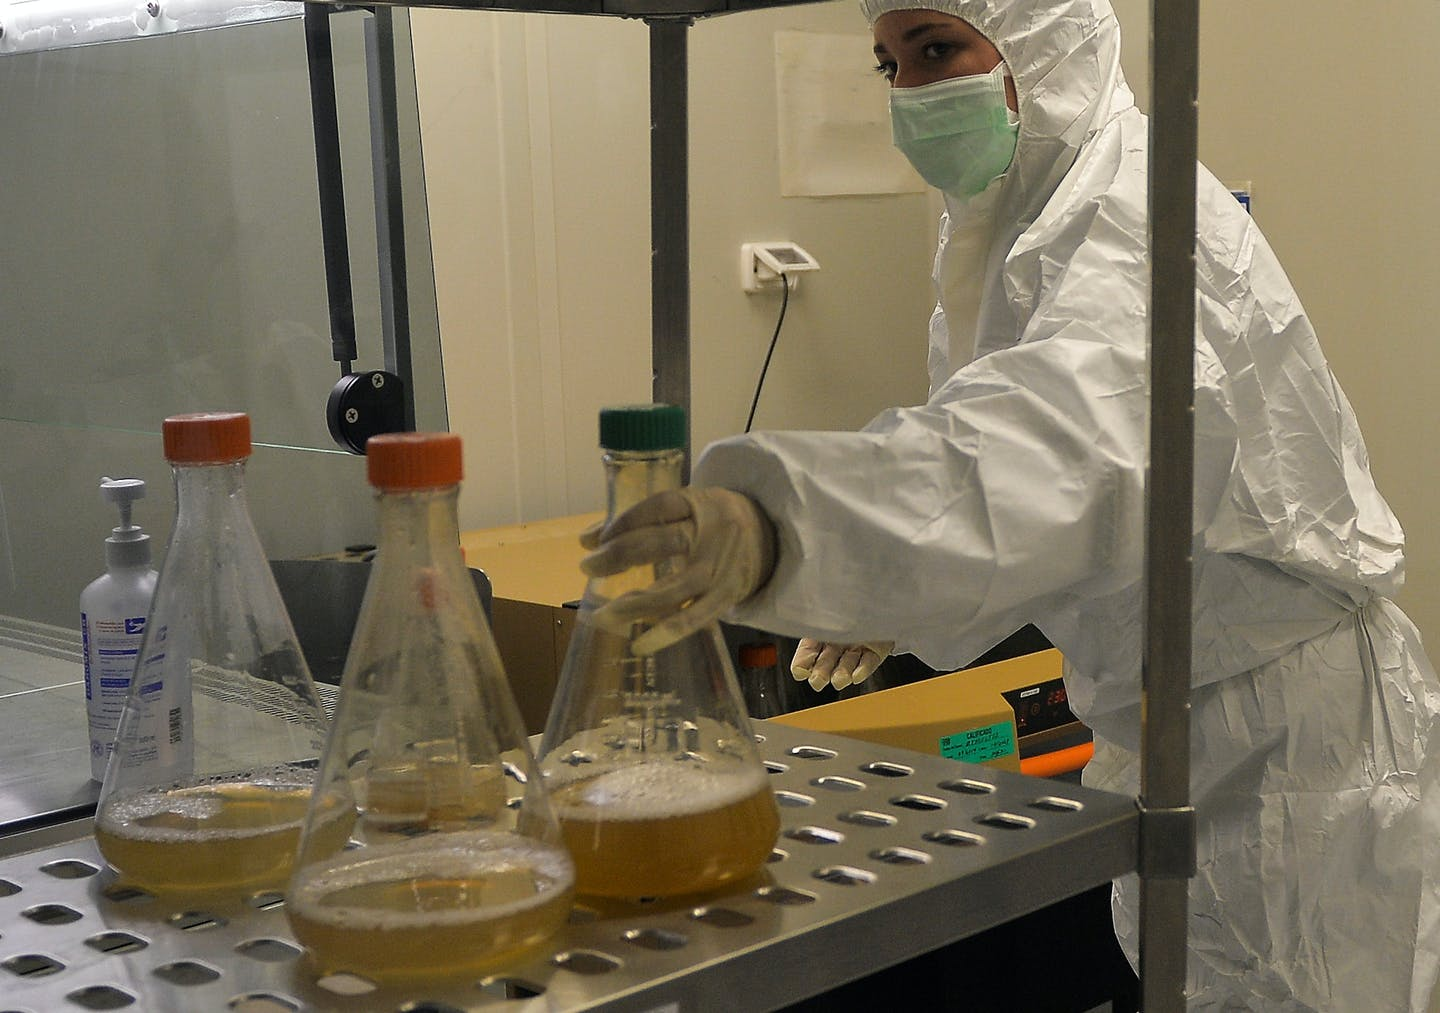 A woman in full body PPE reaches for a beaker containing a murky liquid.